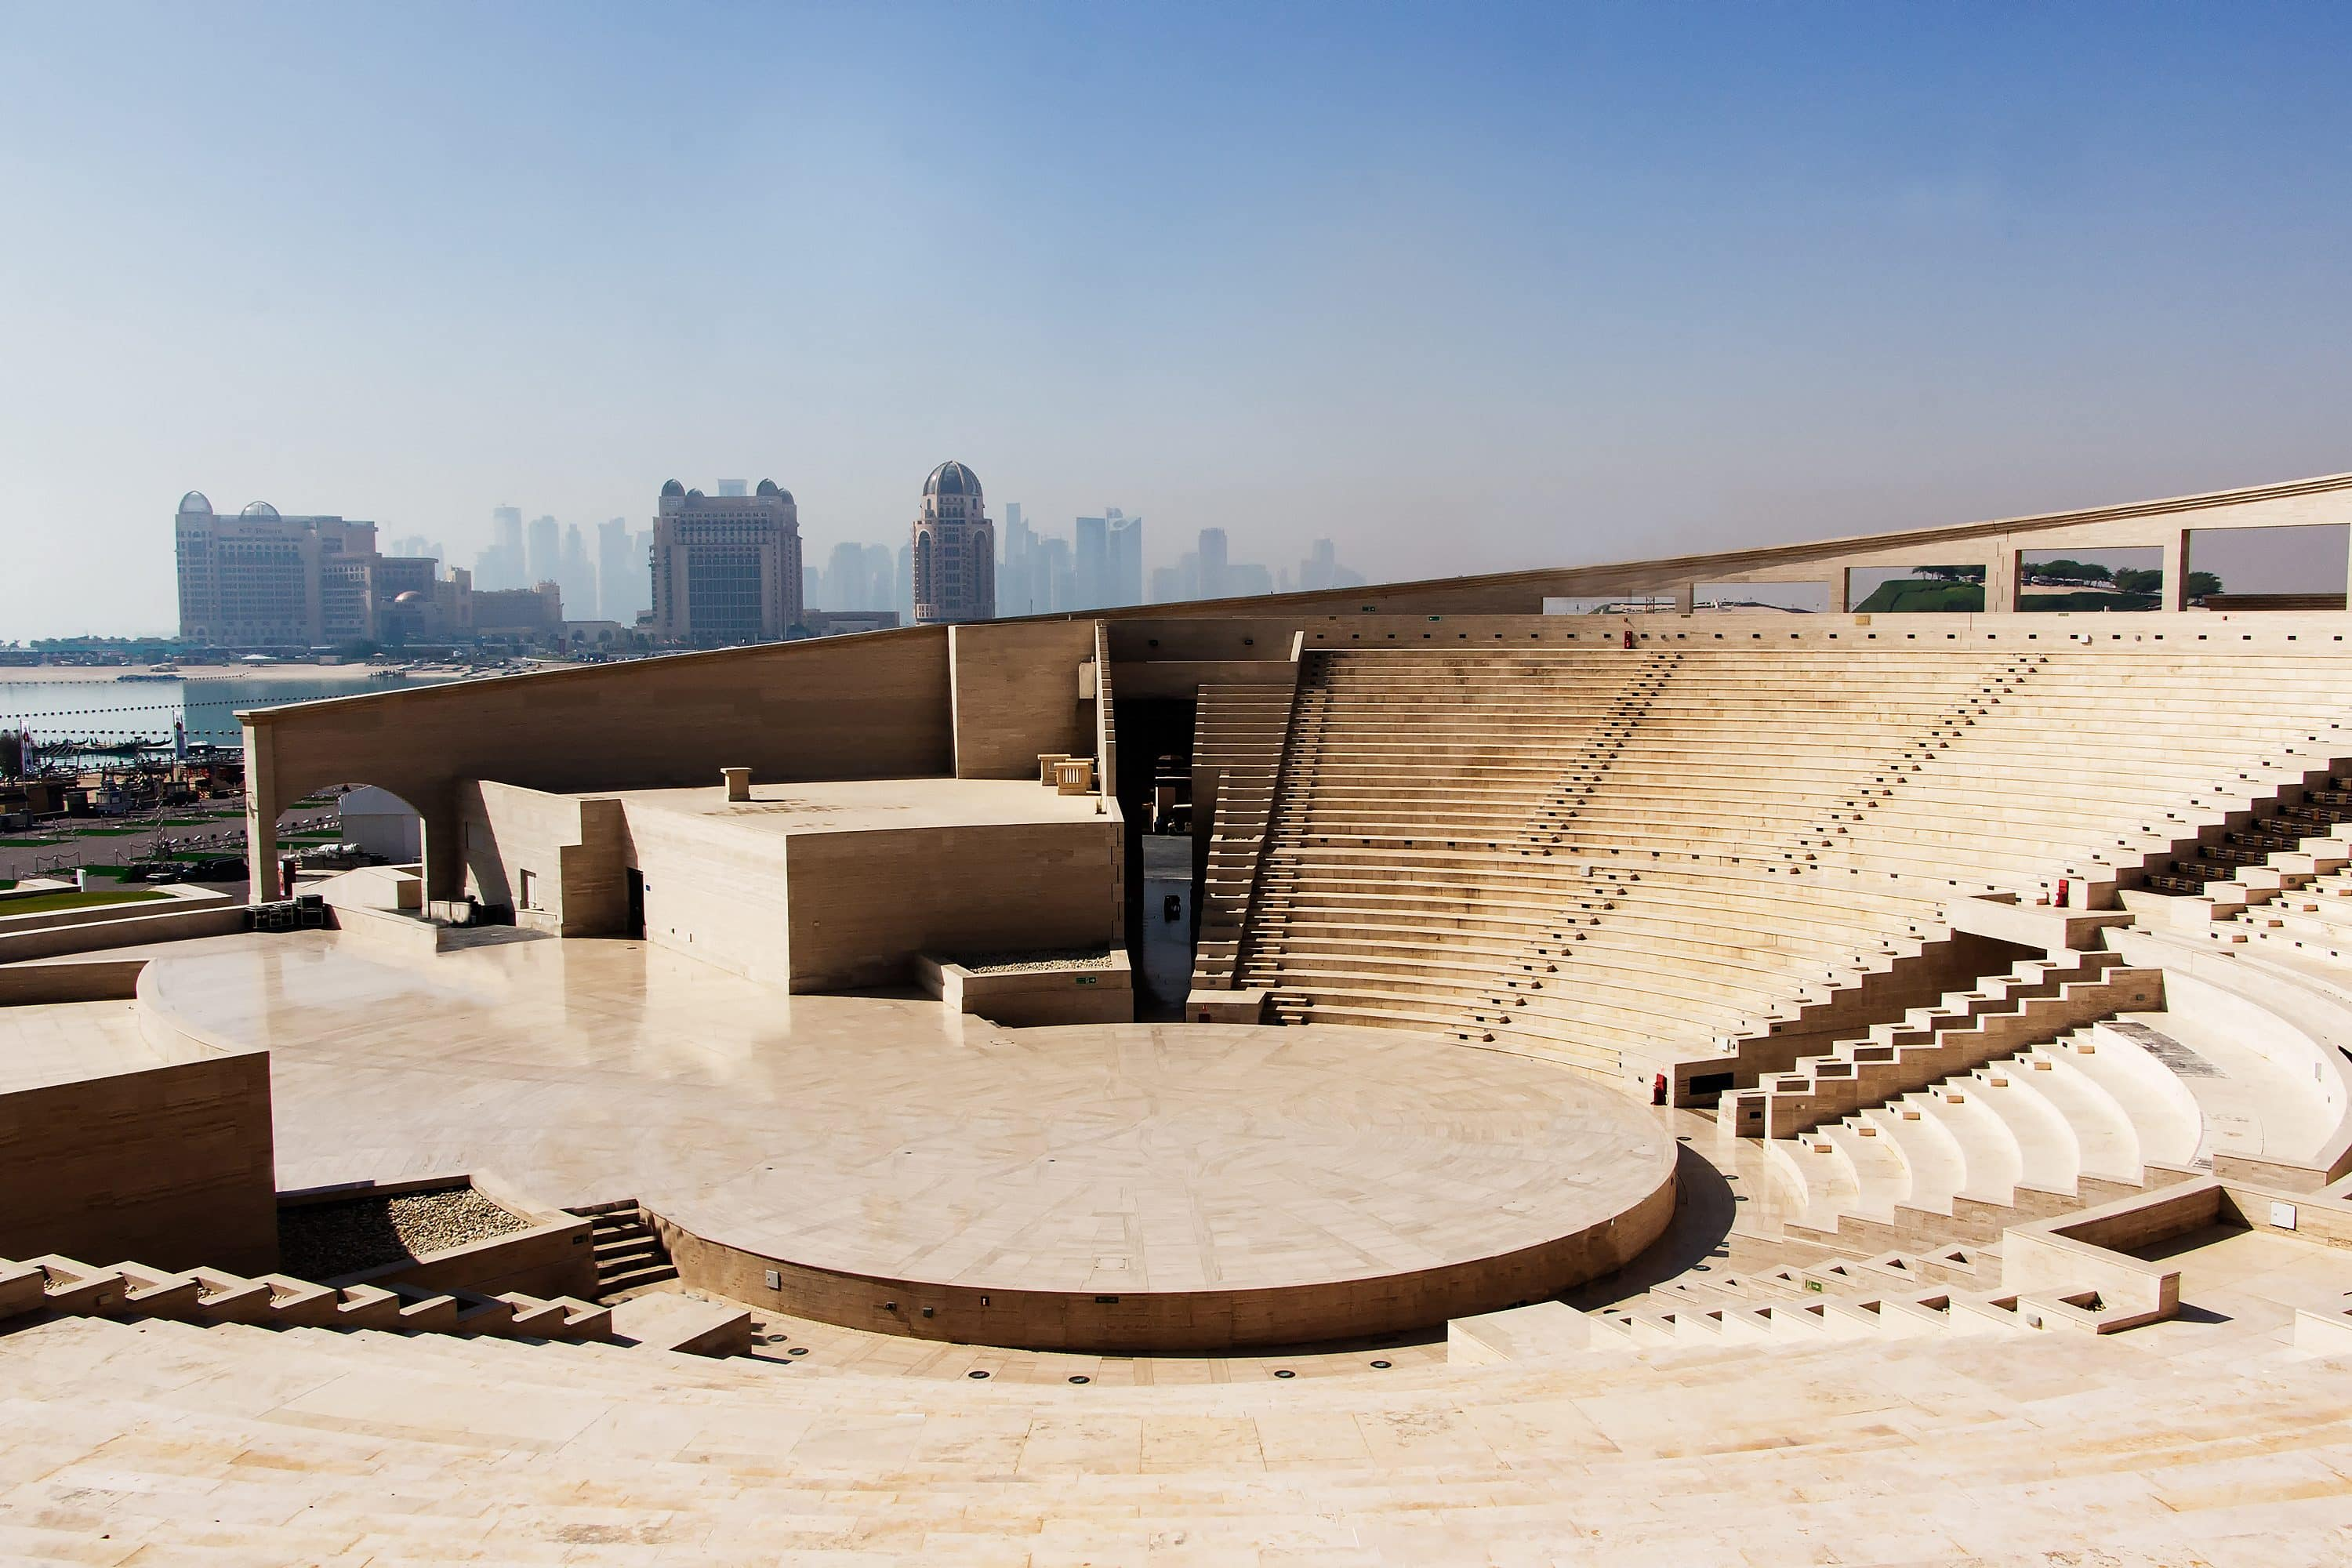 The amphitheatre at Katara Cultural Village